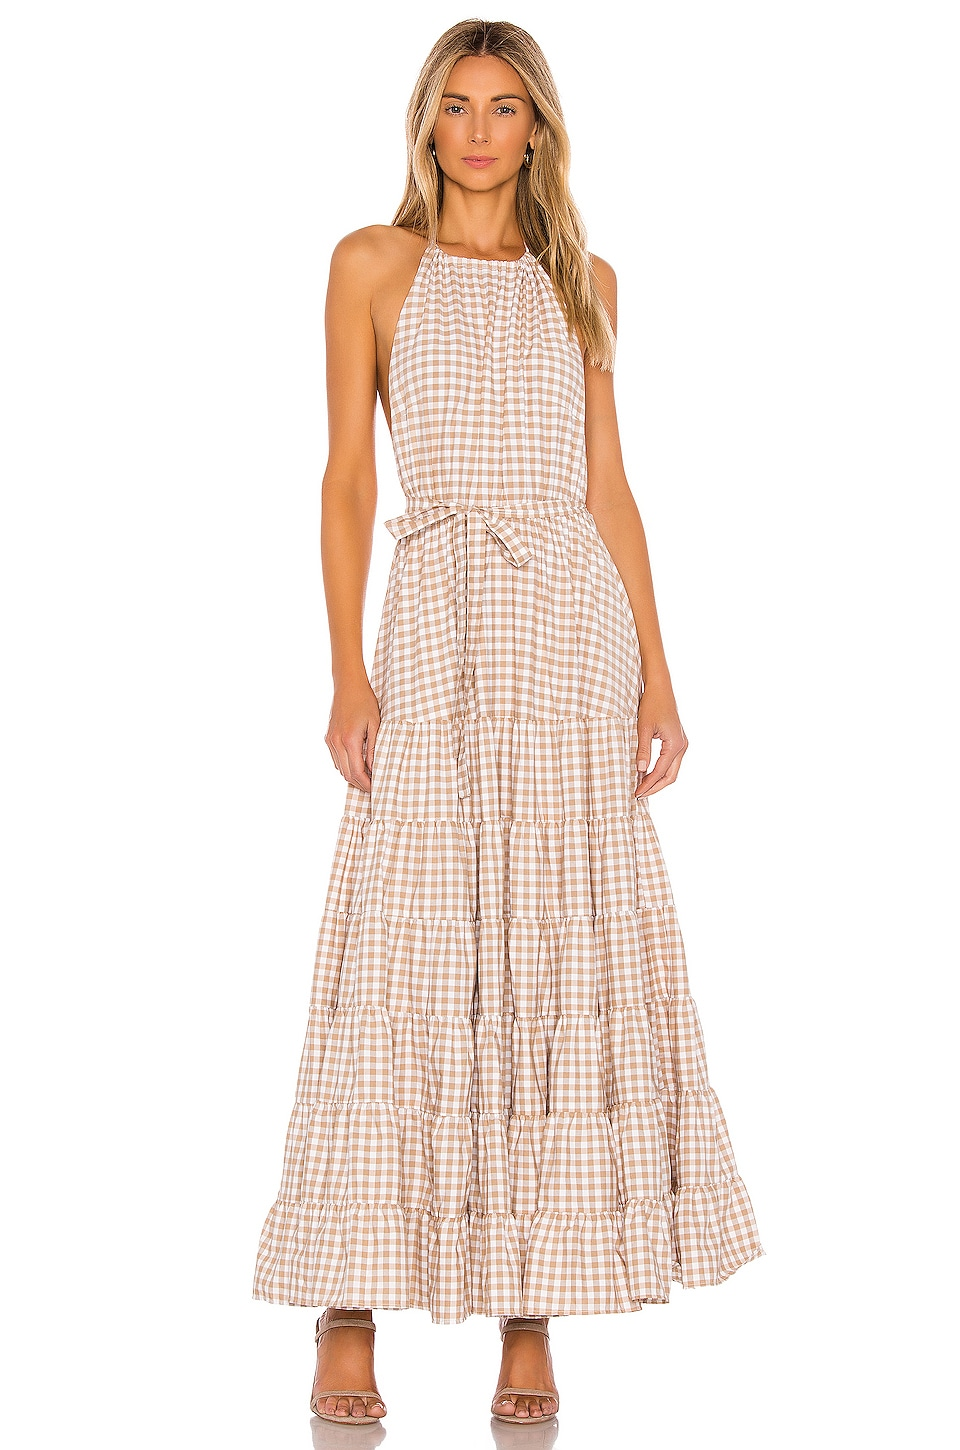 Sundress Neptune Maxi Dress in Gingham Beige